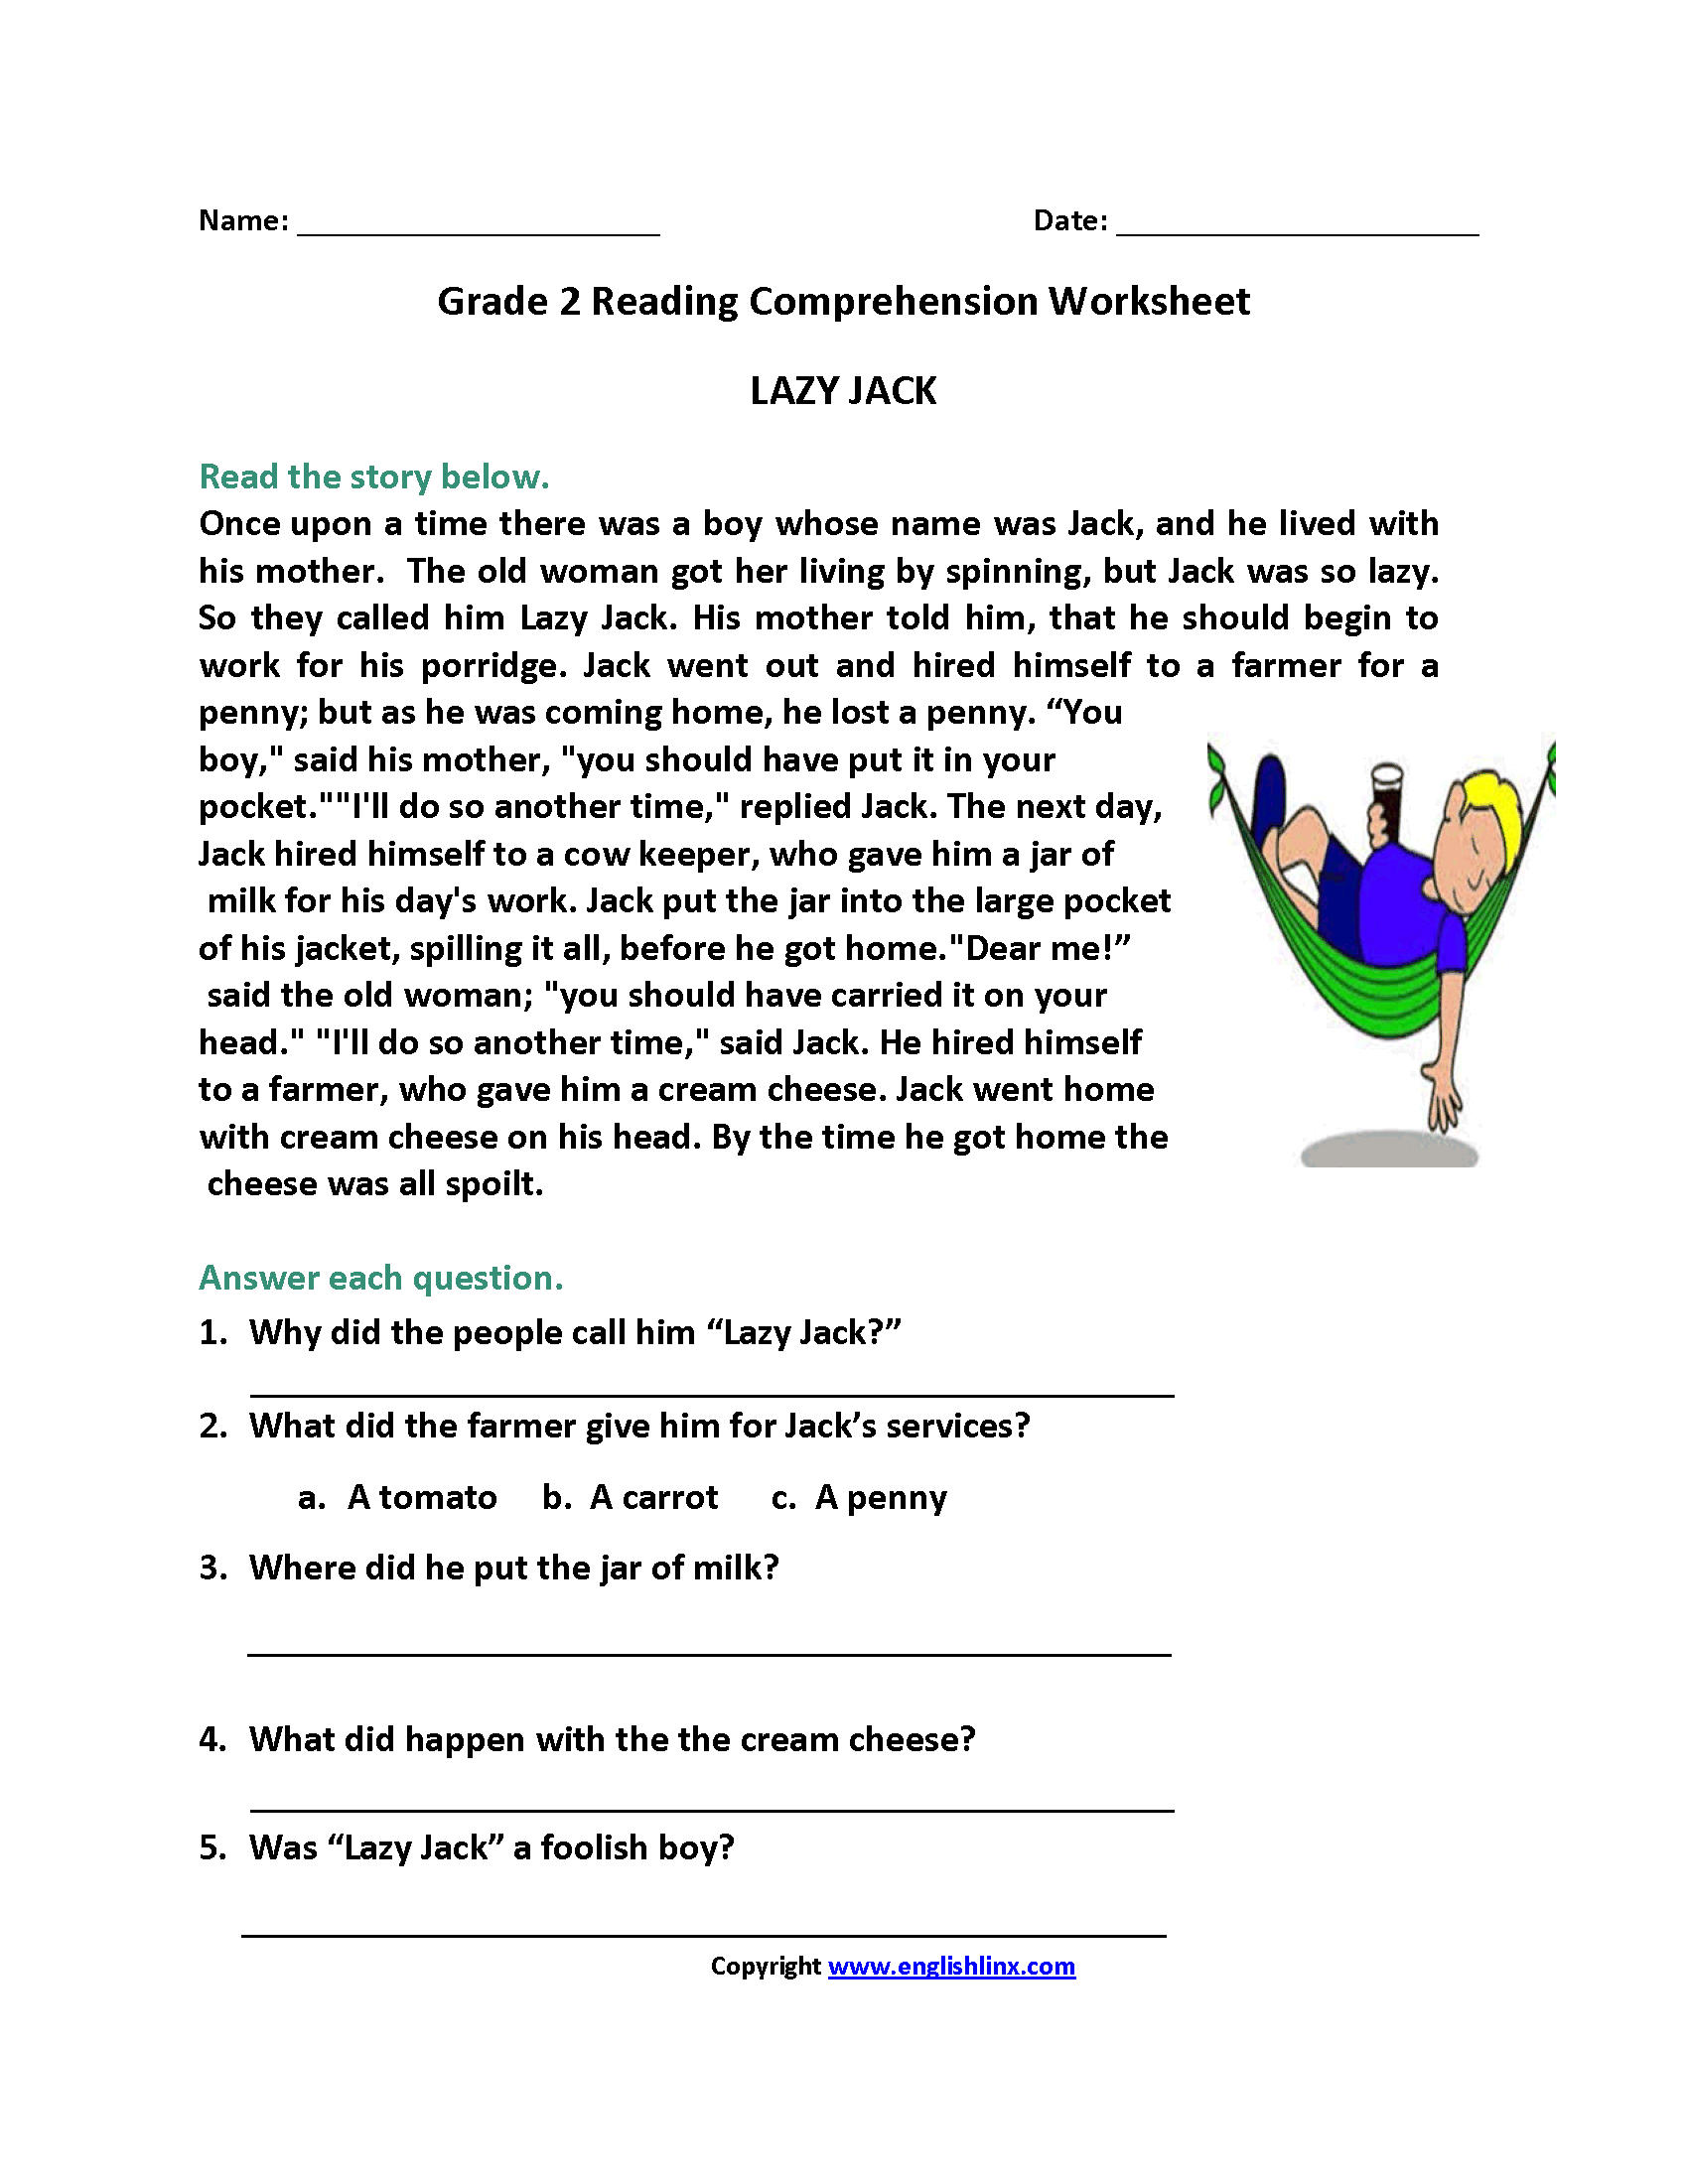 Lazy Jack Second Grade Reading Worksheets With Images